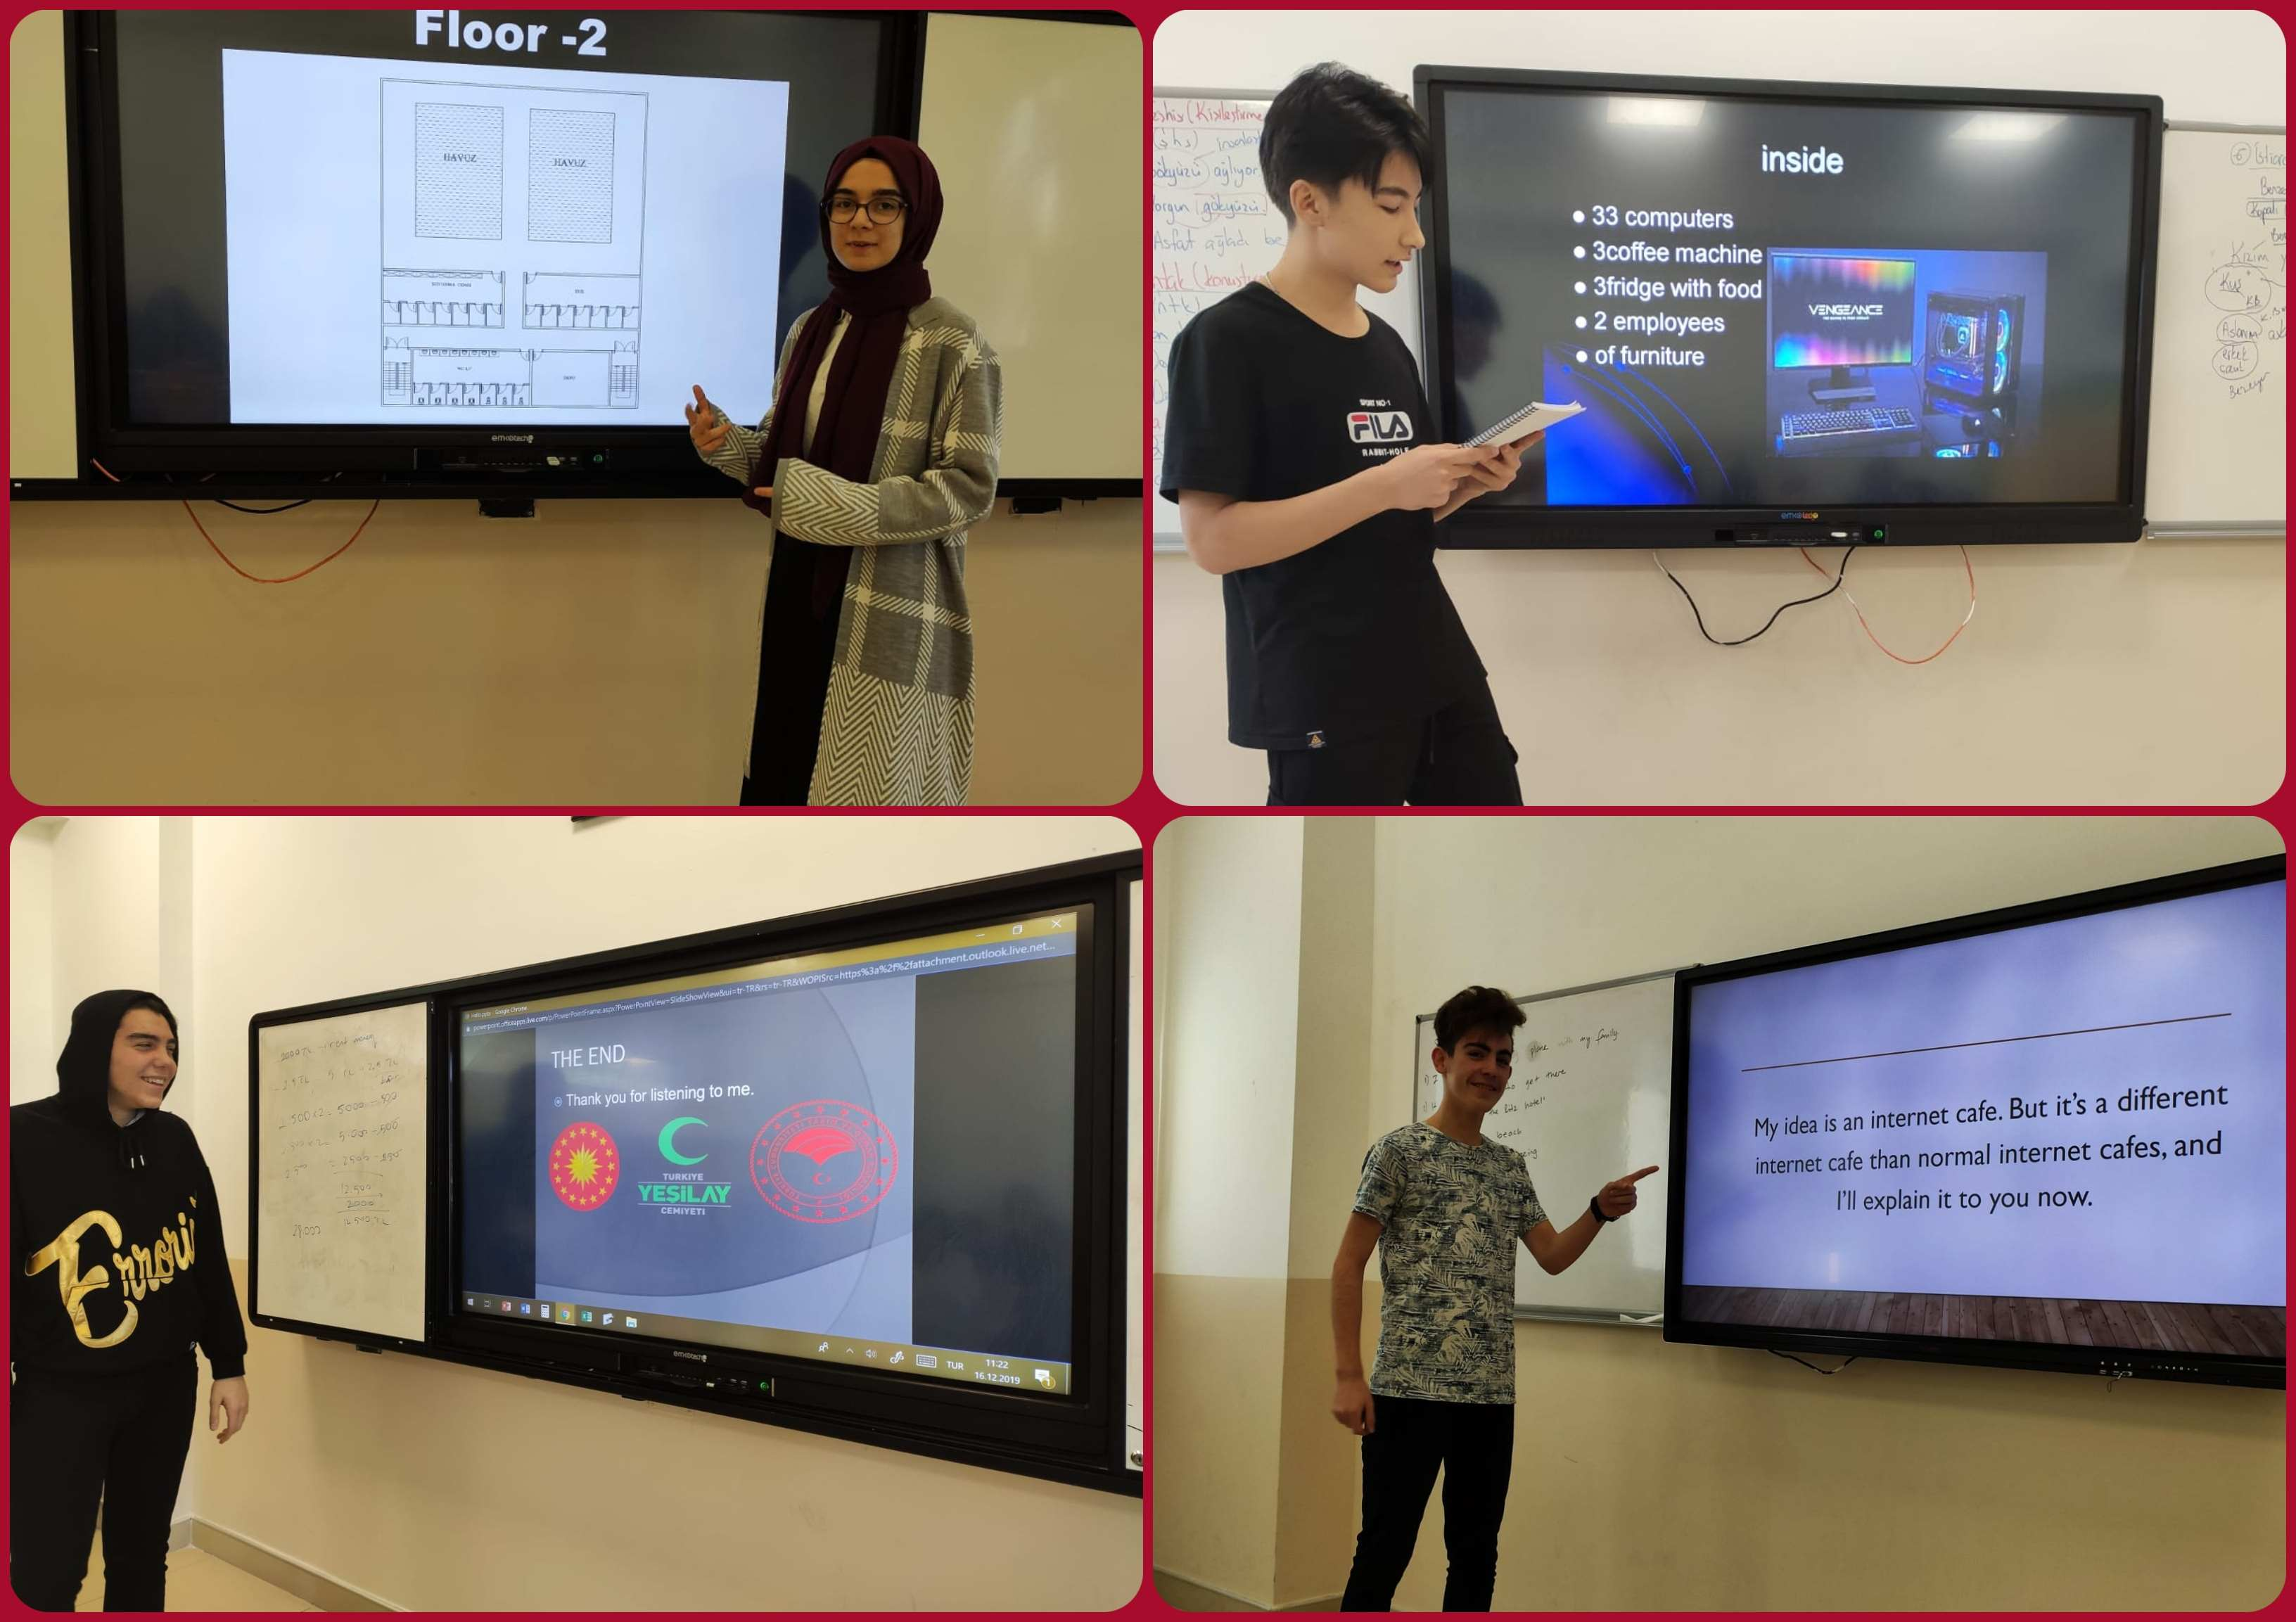 Entrepreneur projects of our highschool students ... We aimed to broaden their minds with their different ideas...